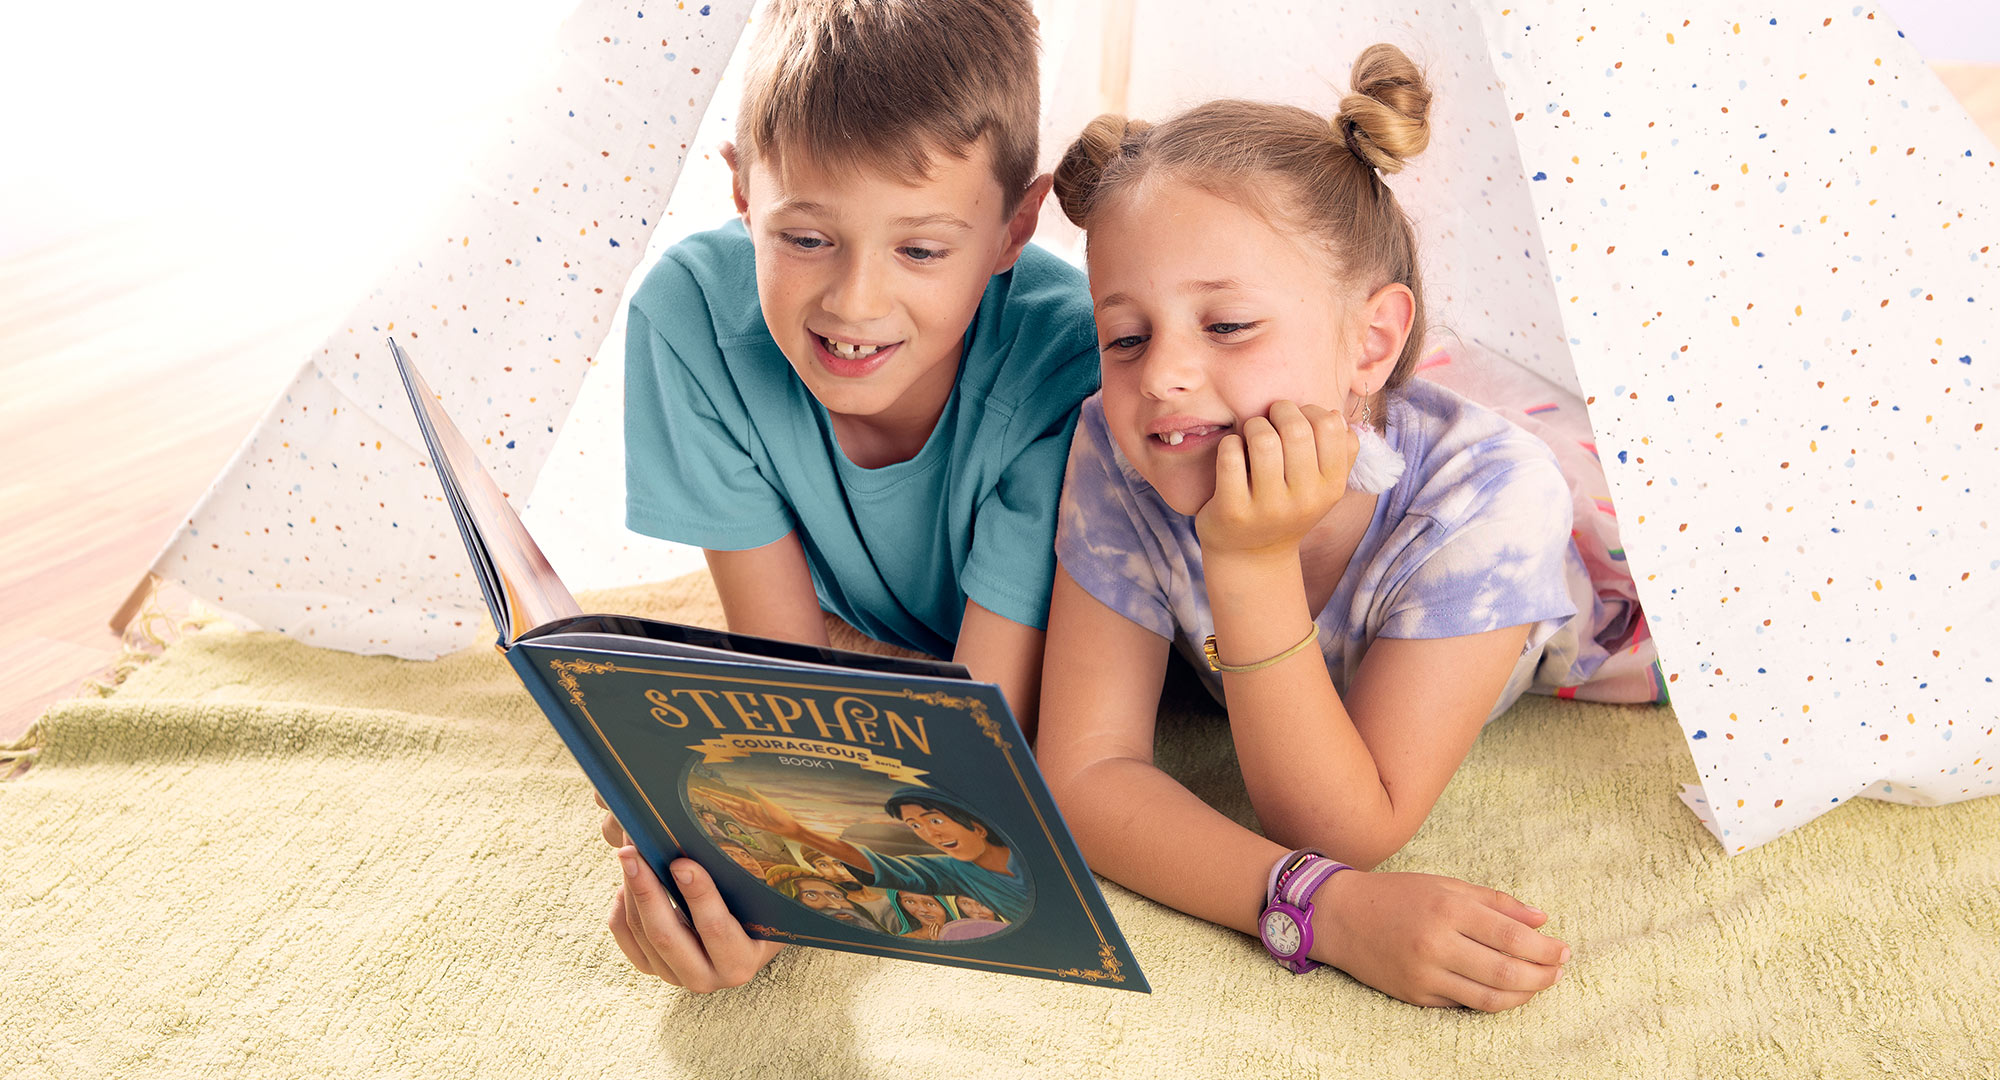 Two kids reading Stephen book